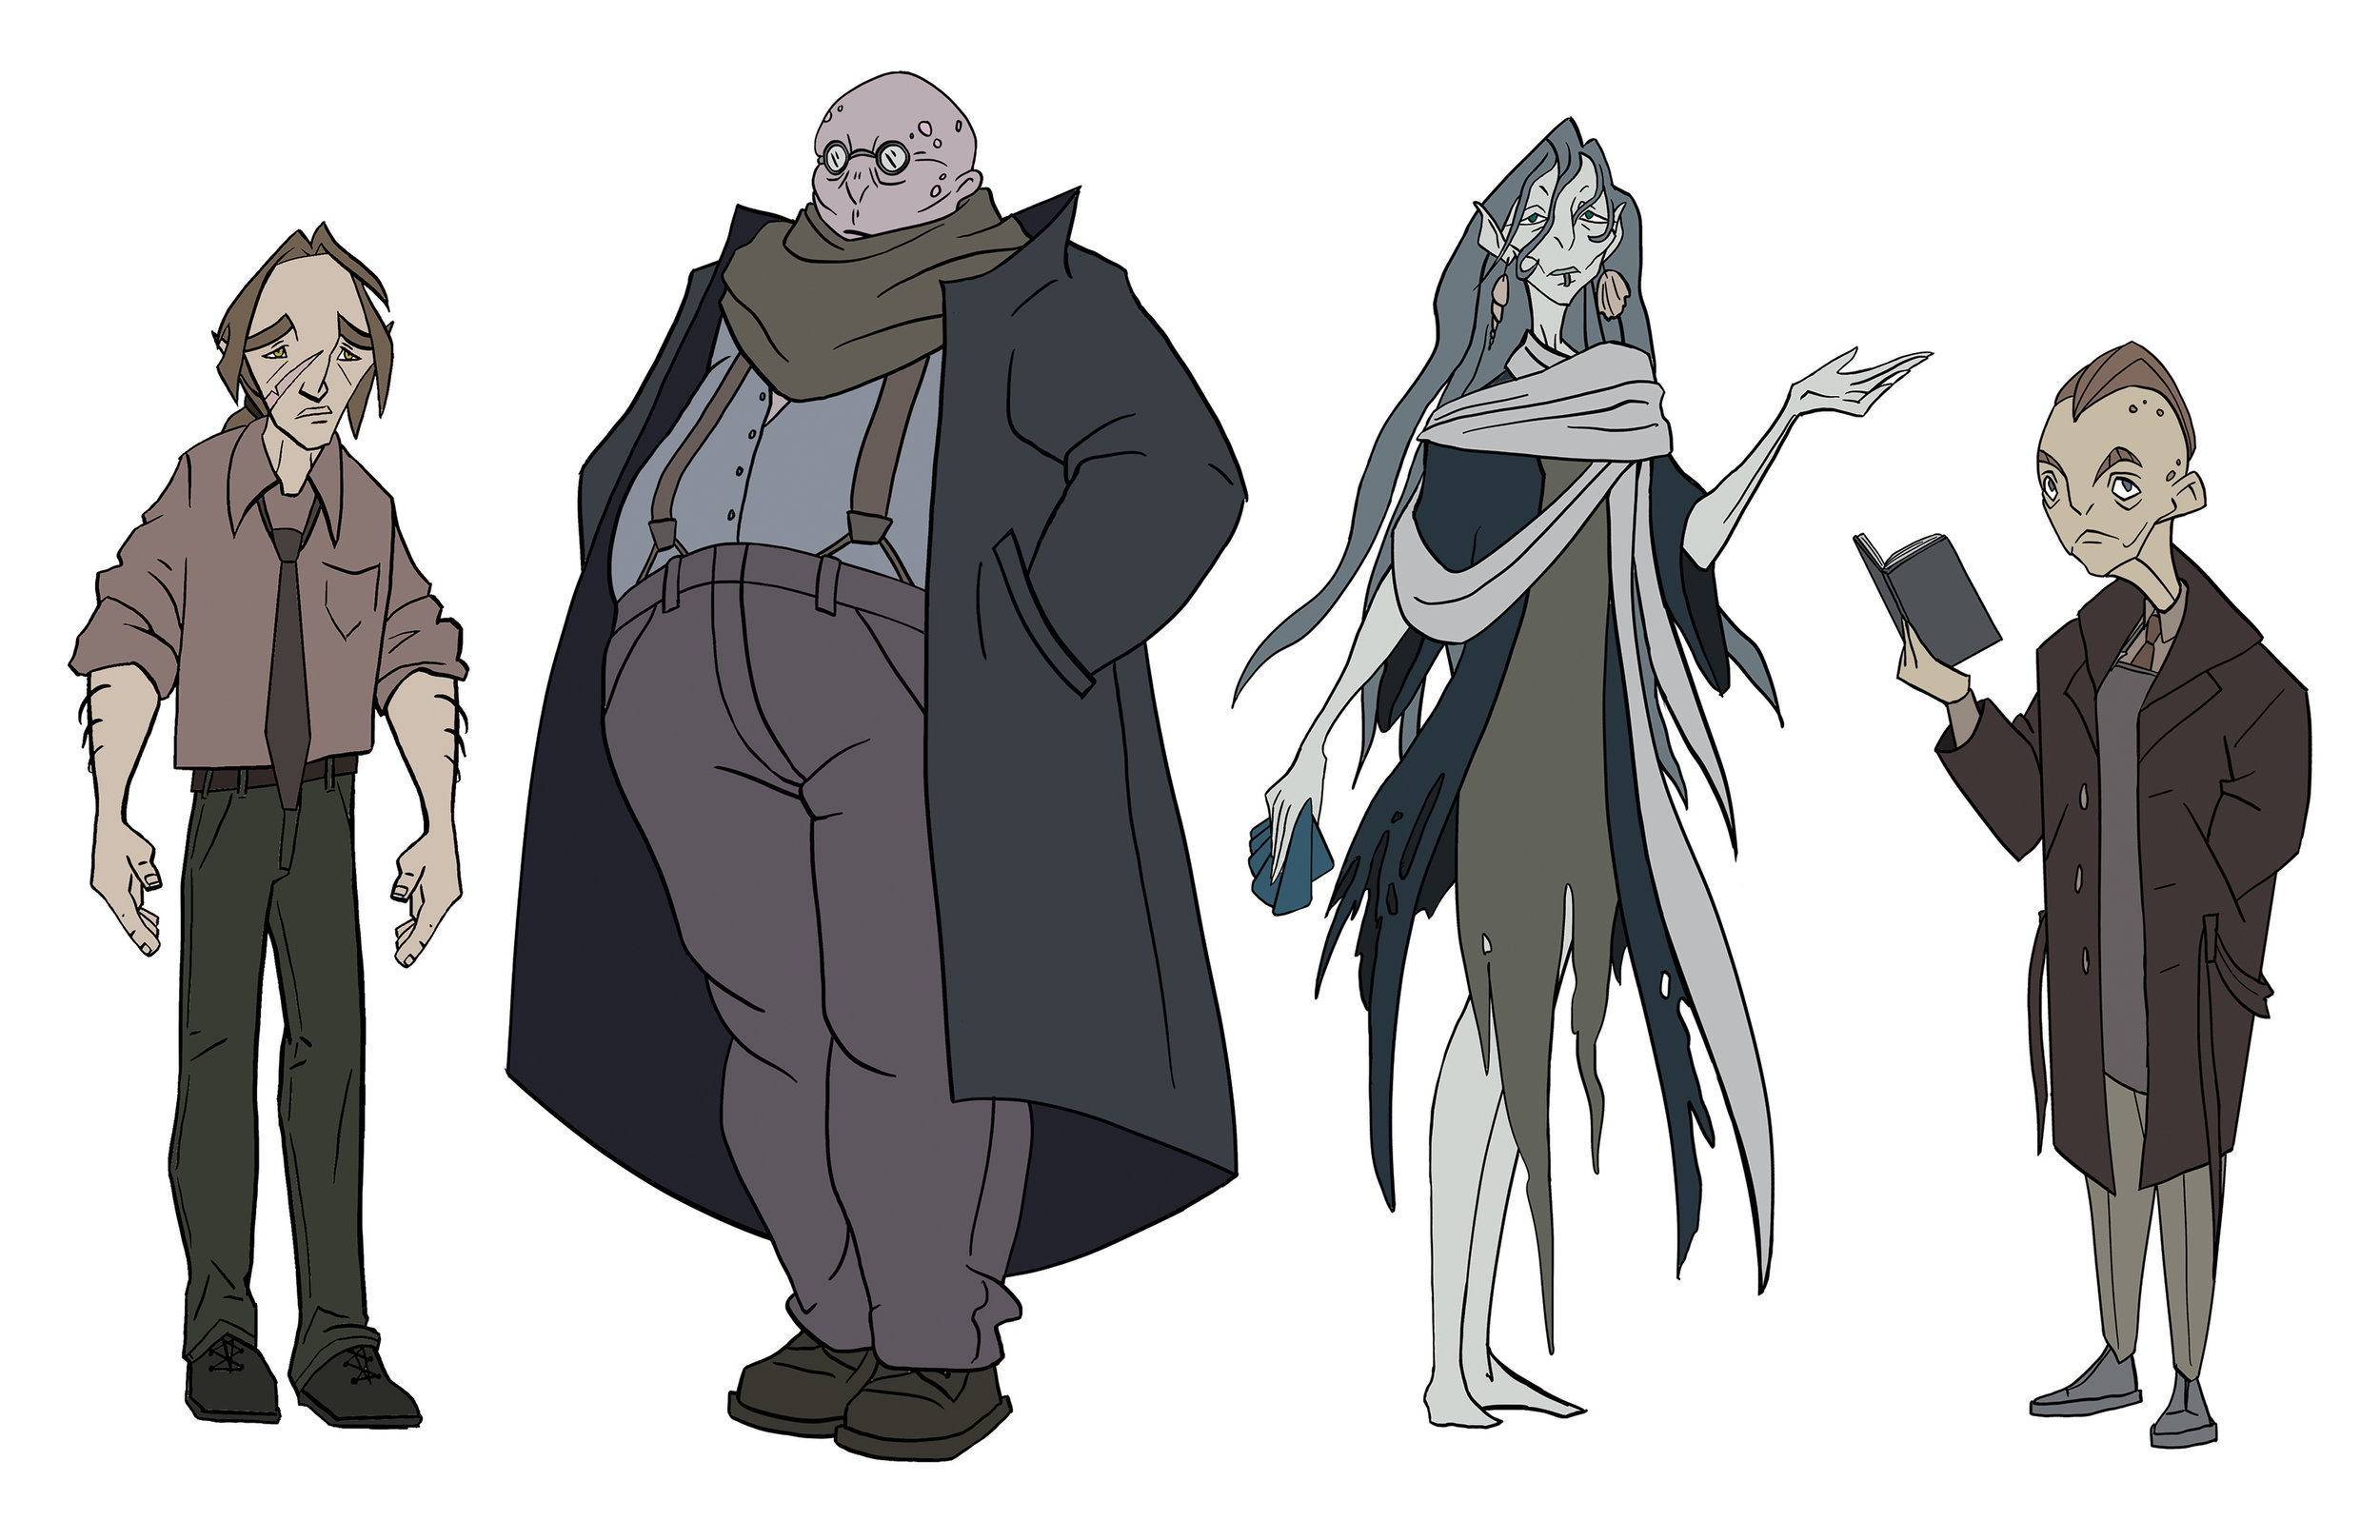 Above: character lineup — The main character, a werewolf, and three supporting characters, worshippers of an elder sea god